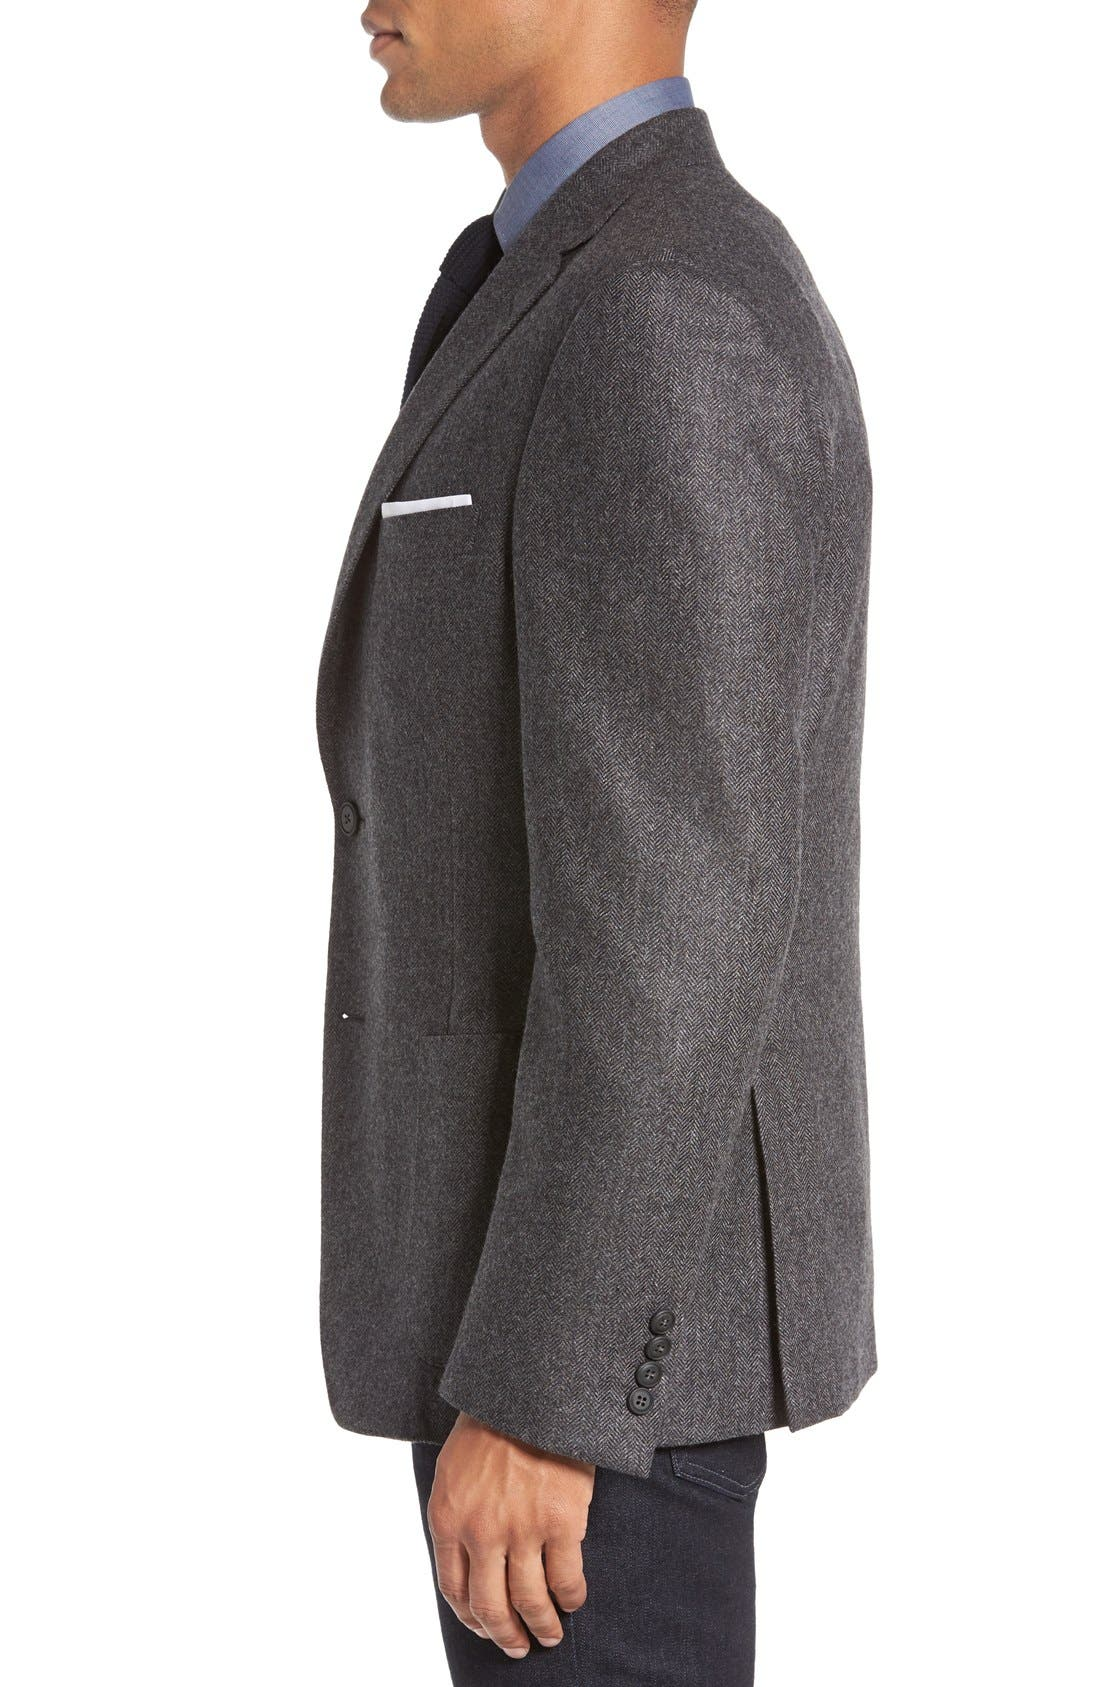 Beckett Classic Fit Herringbone Cashmere Sport Coat,                             Alternate thumbnail 3, color,                             Charcoal